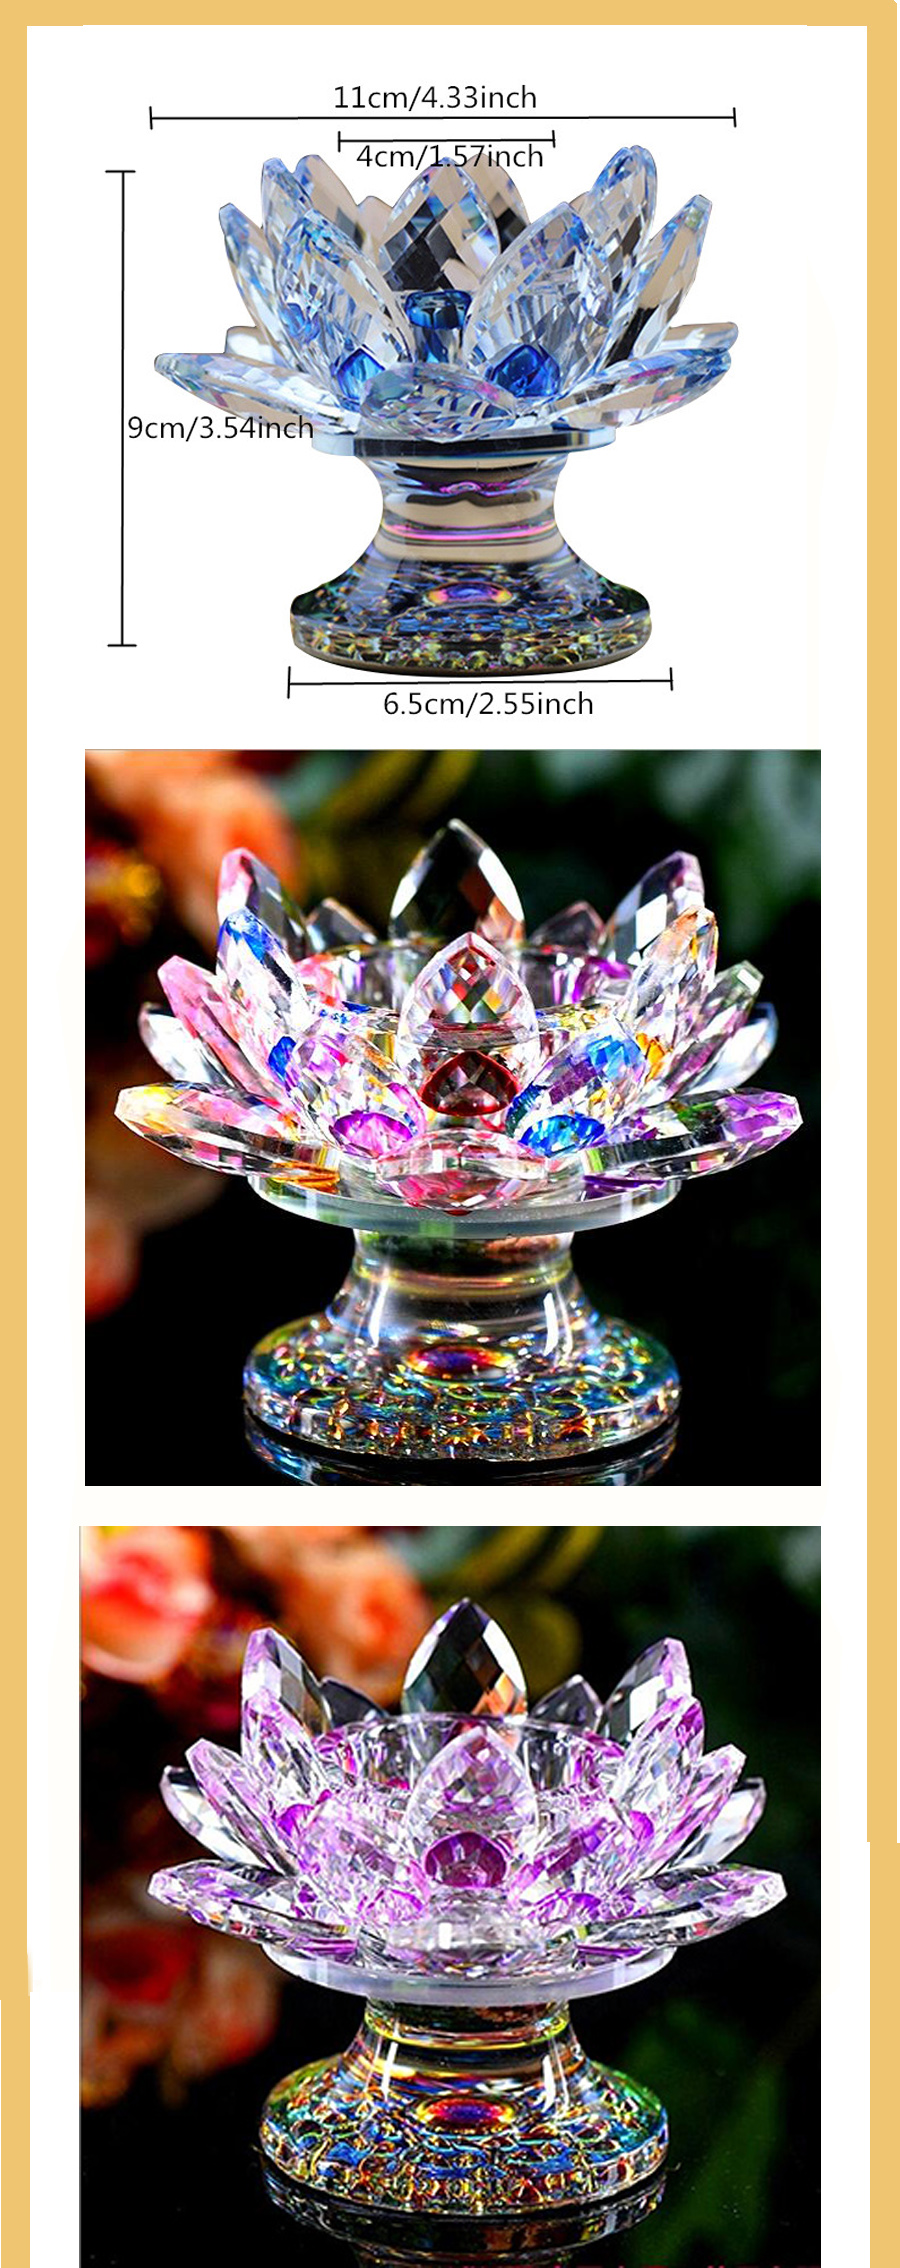 Precise Handmade Crystal Lotus Flower Candlestick Miniature Crystal Craft Glass Candle Holder Home Decor Accessories Ornament Gift 100% High Quality Materials Candle Holders